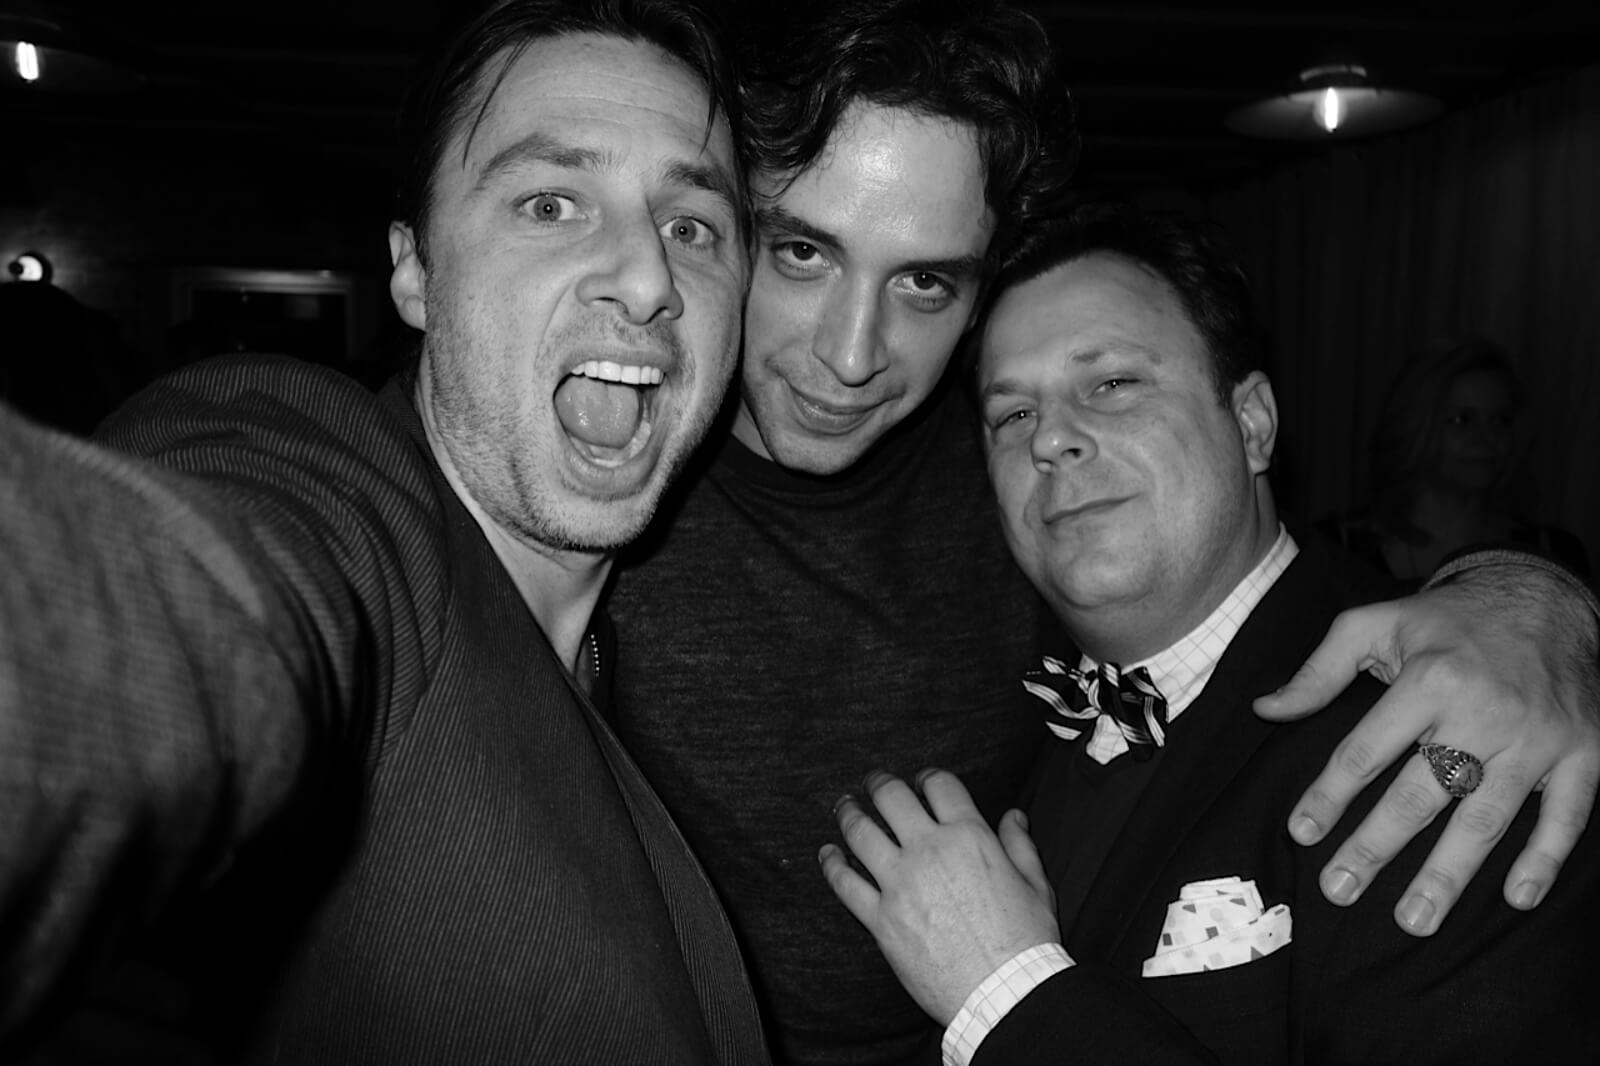 A black and white photo of Zach Braff, Nick Cordero, and Brooks Ashmanskas in street clothes (pictured from left to right).